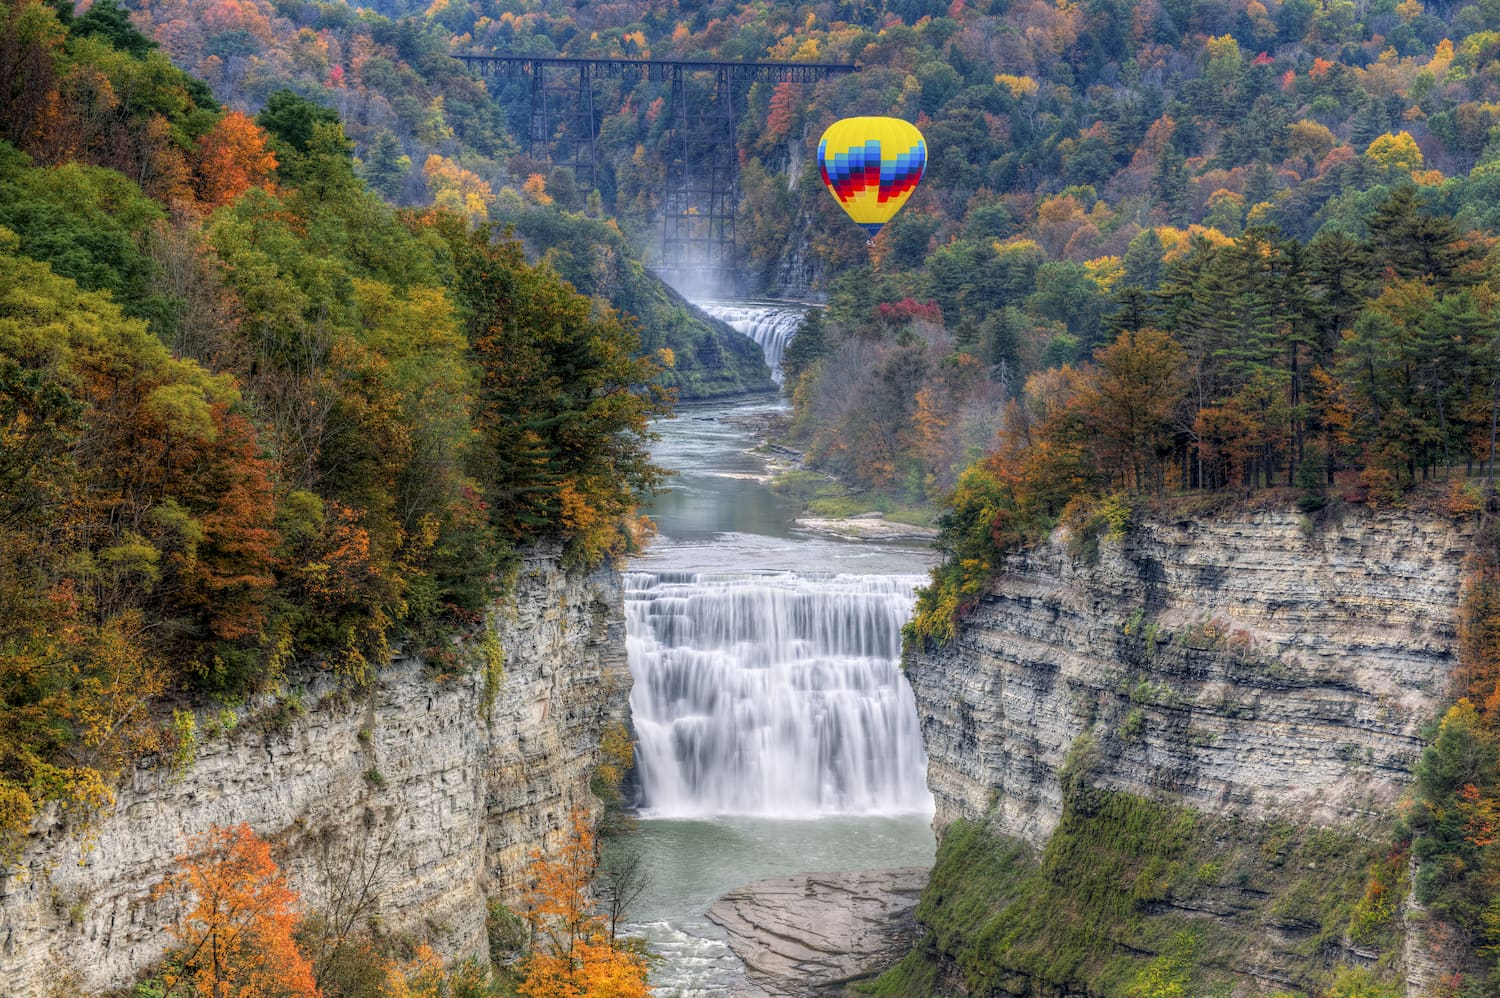 hot air balloon over waterfall at middle falls at letchworth state park